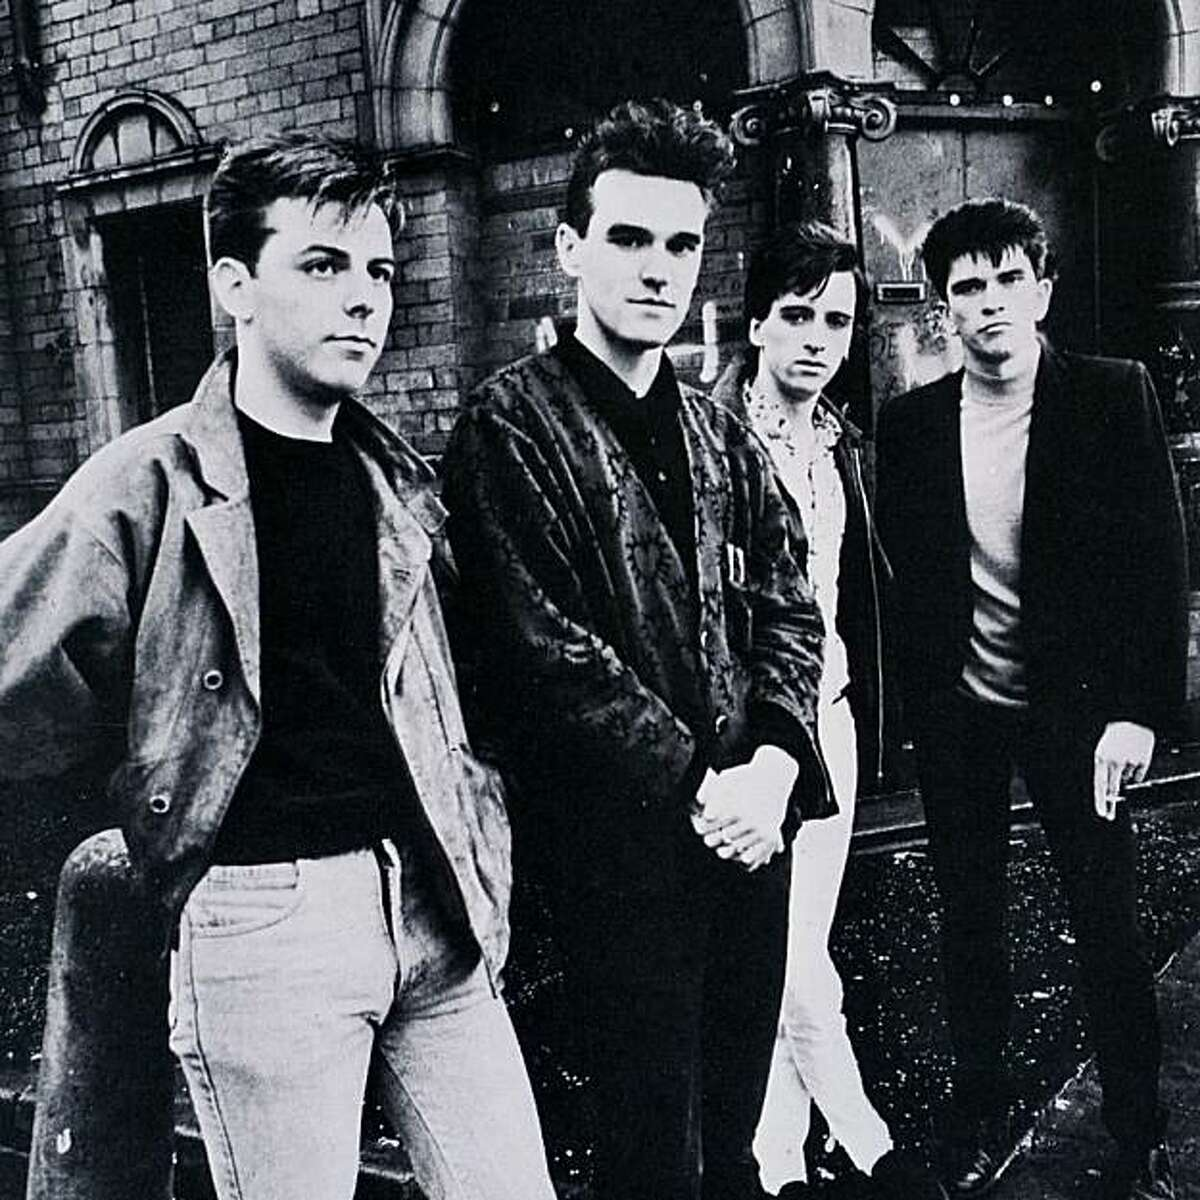 The Smiths, from left, bassist Andy Rourke, singer Morrissey, guitarist Johnny Marr, drummer Mike Joyce. The group allowed PETA to use their hit song